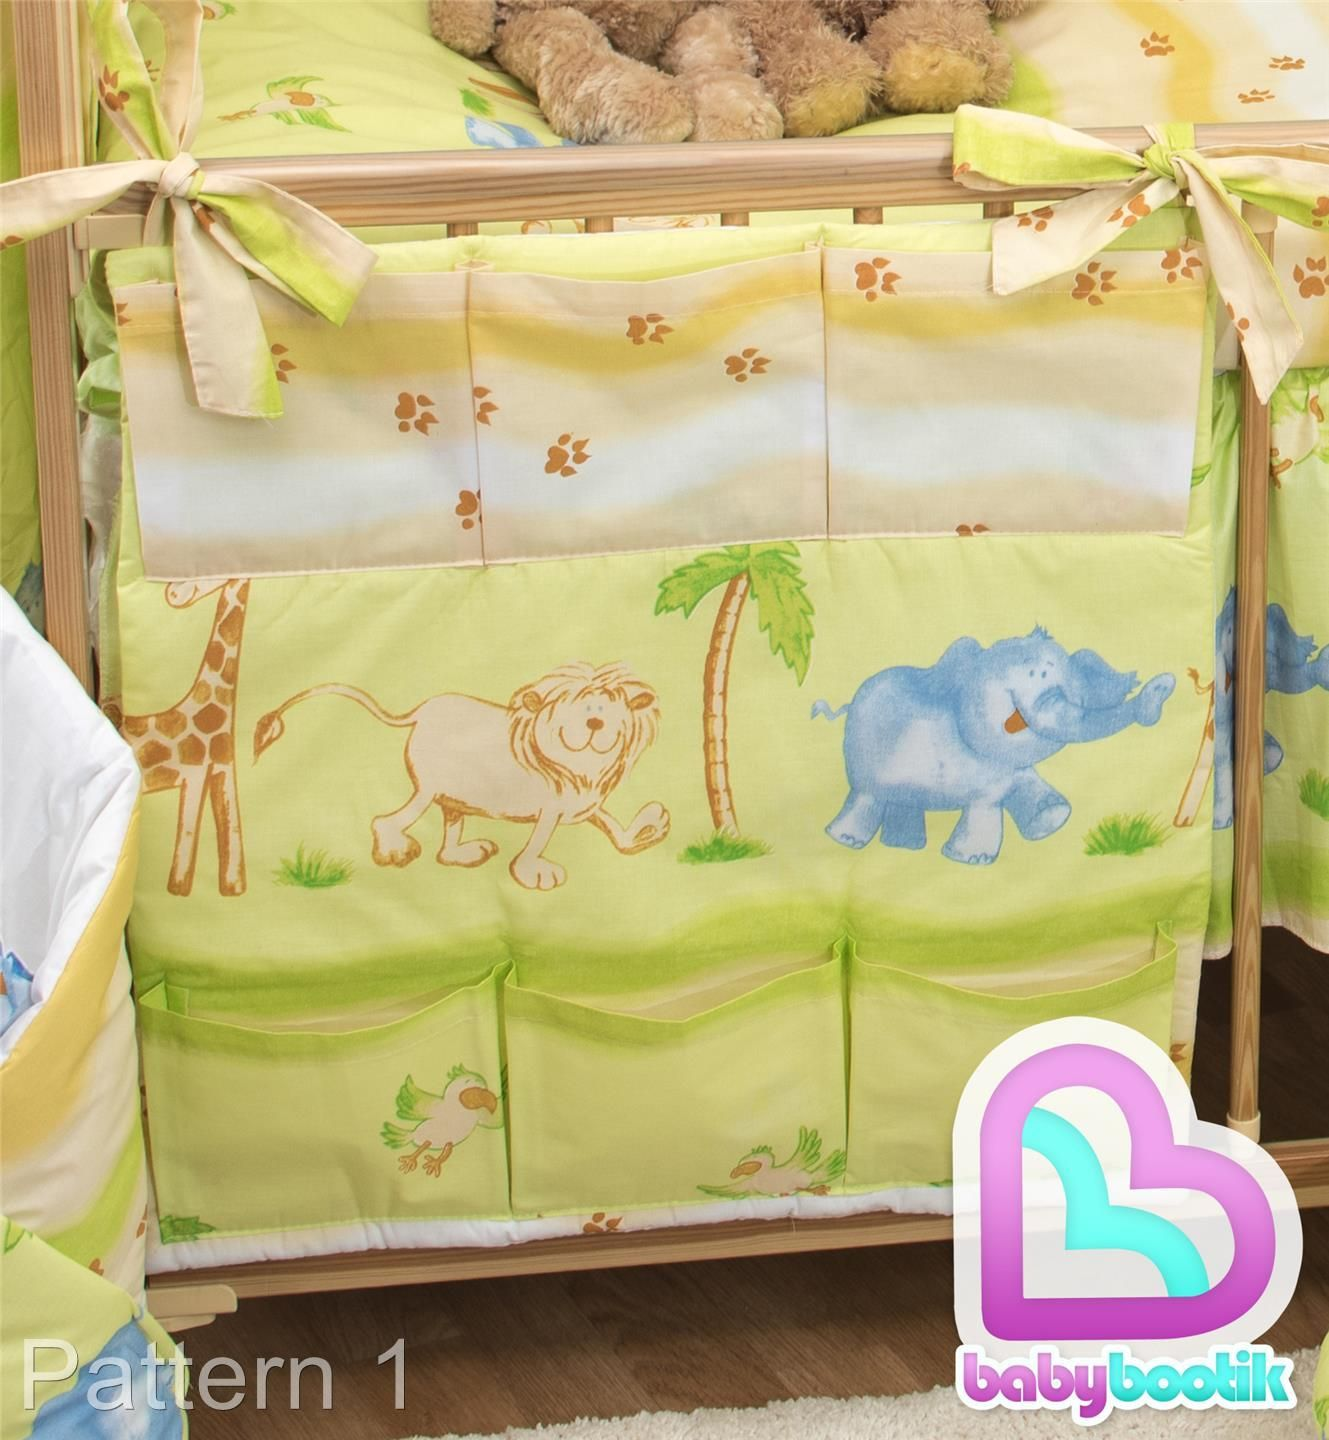 Nursery Baby Cot Tidy Padded Organiser for Cot// Cotbed// Cot Bed